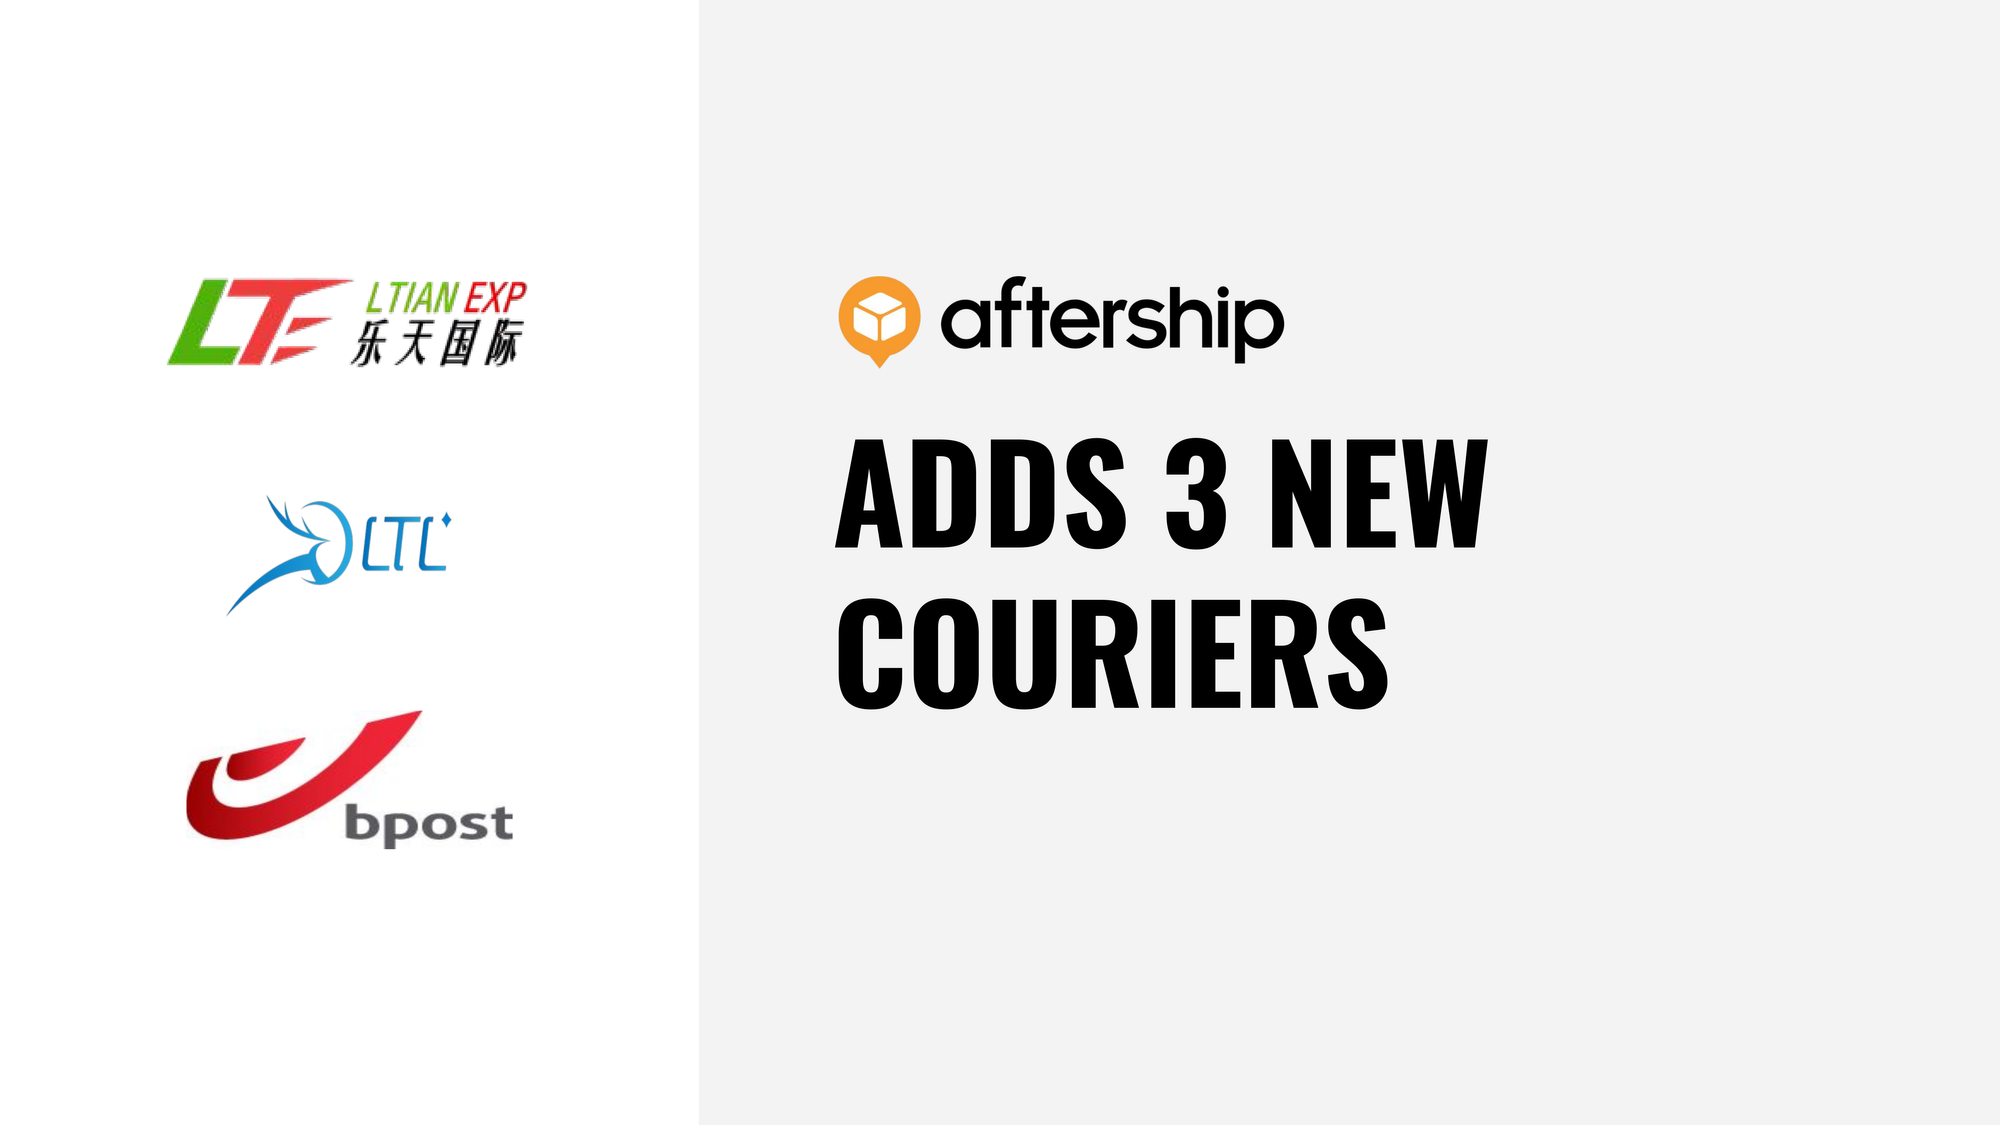 AfterShip adds 3 new couriers this week (2nd Nov 2020 to 6th Nov 2020)